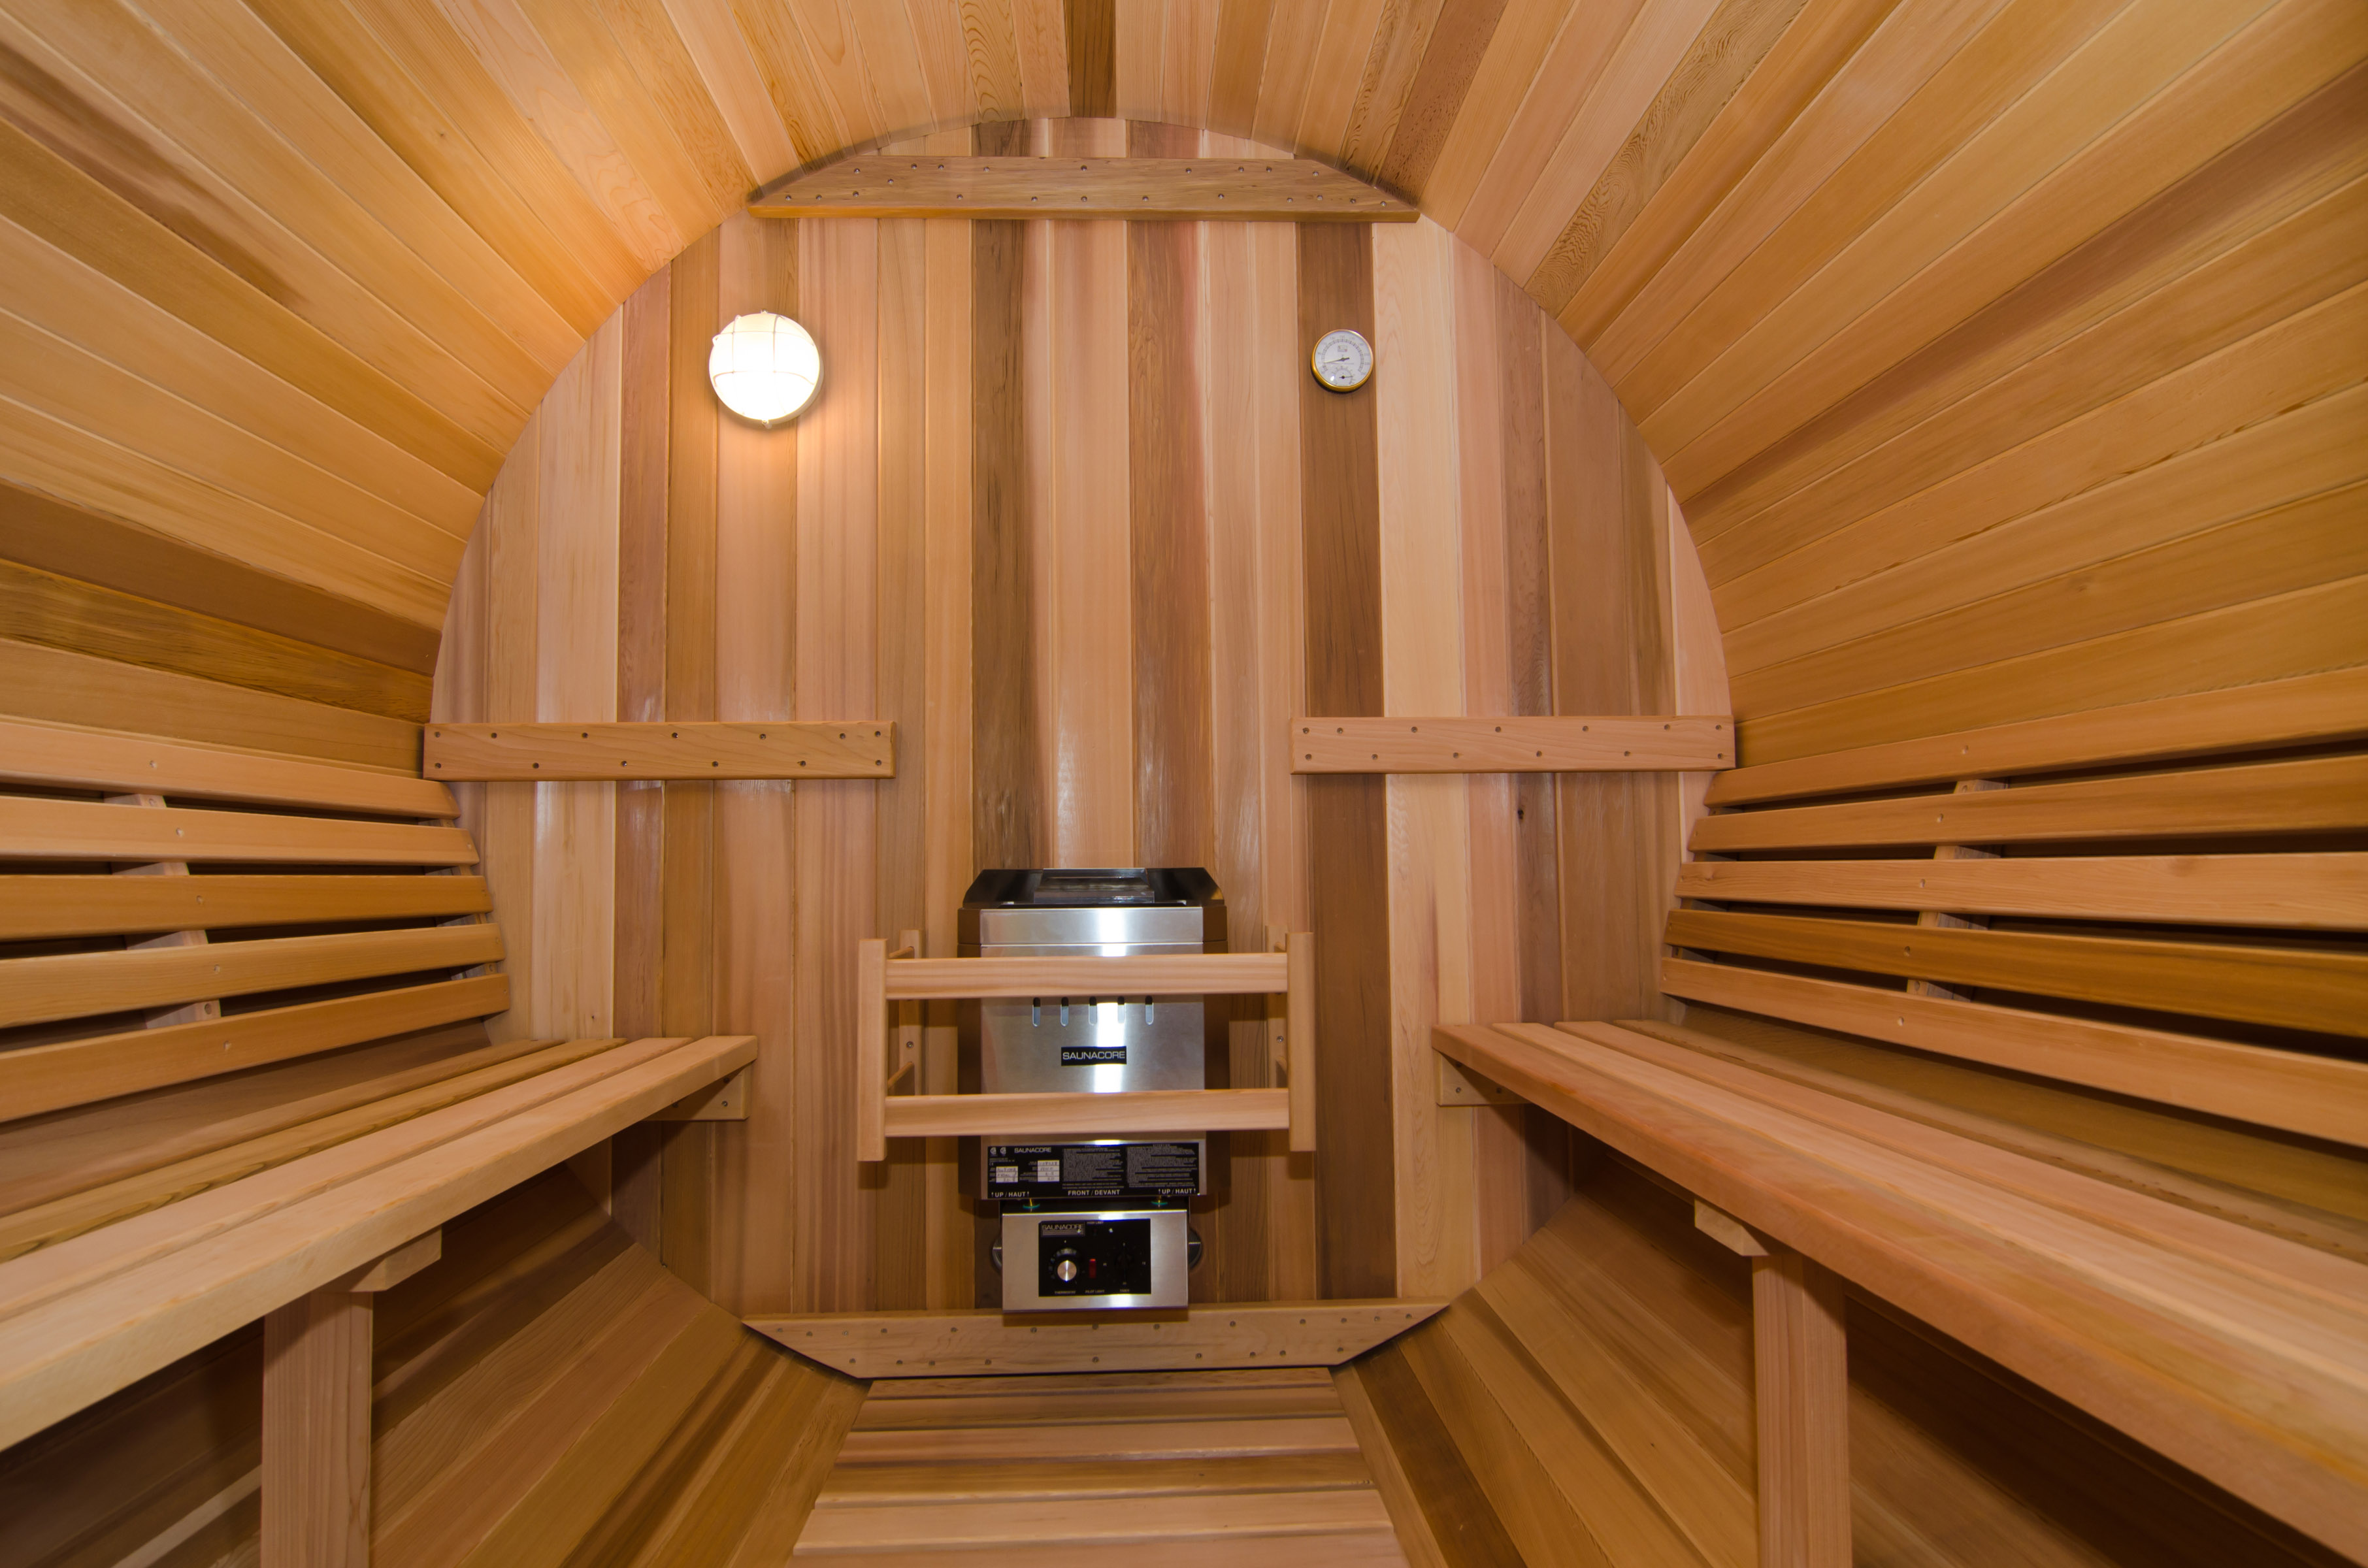 of may surprising health blood room help time bathing the lower naturally benefits saunas sauna pressure